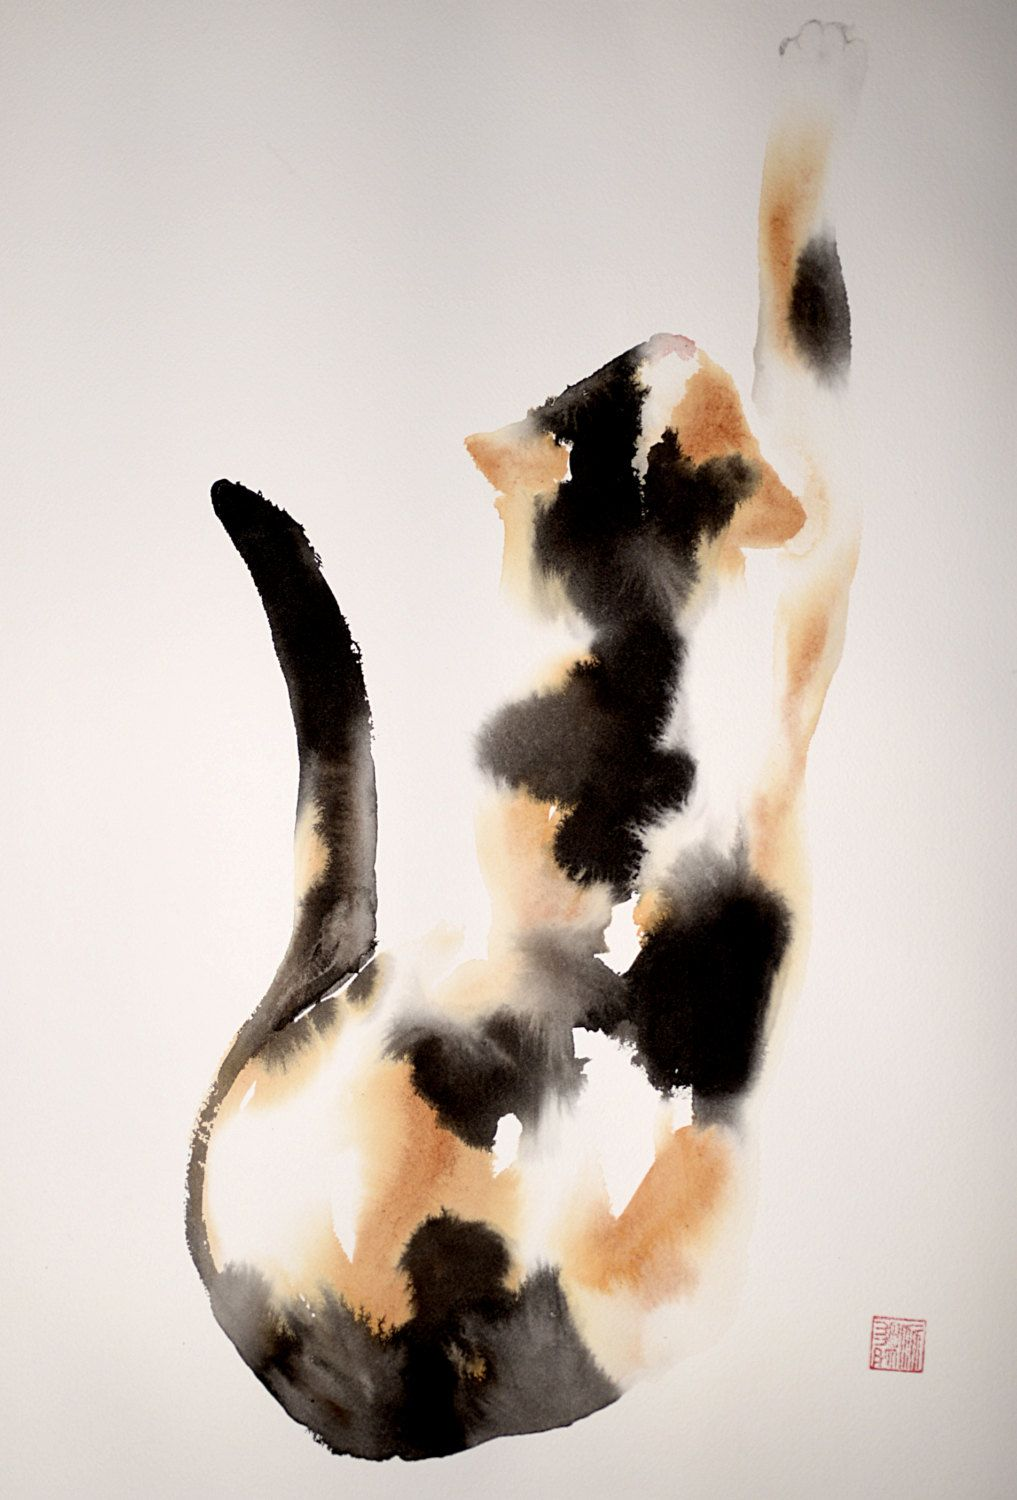 Beautiful Calico Cat Original Ink And Watercolor Mixed Technique